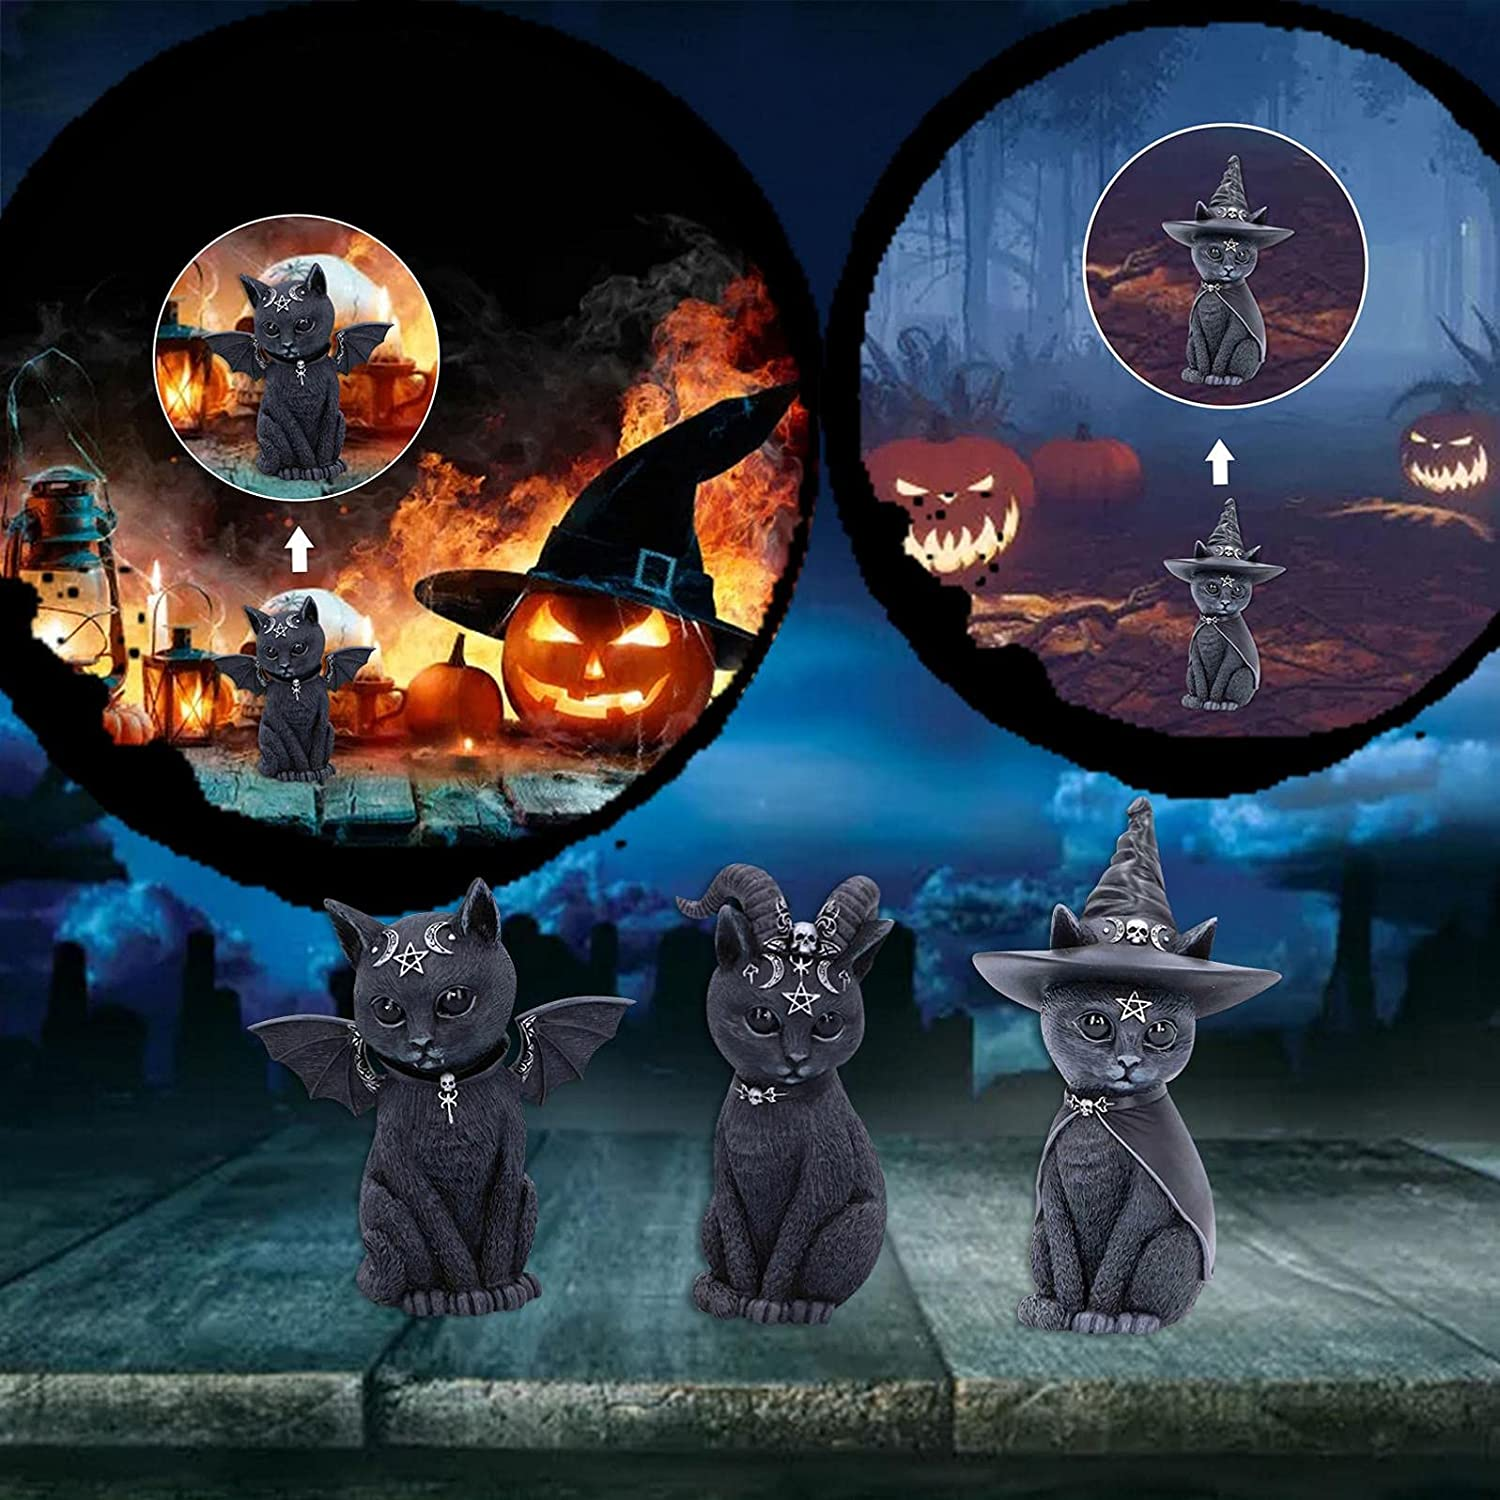 3pc wholesale Mytserious Black Cat with Bat-Wings Statue Ou Arlington Mall Halloween